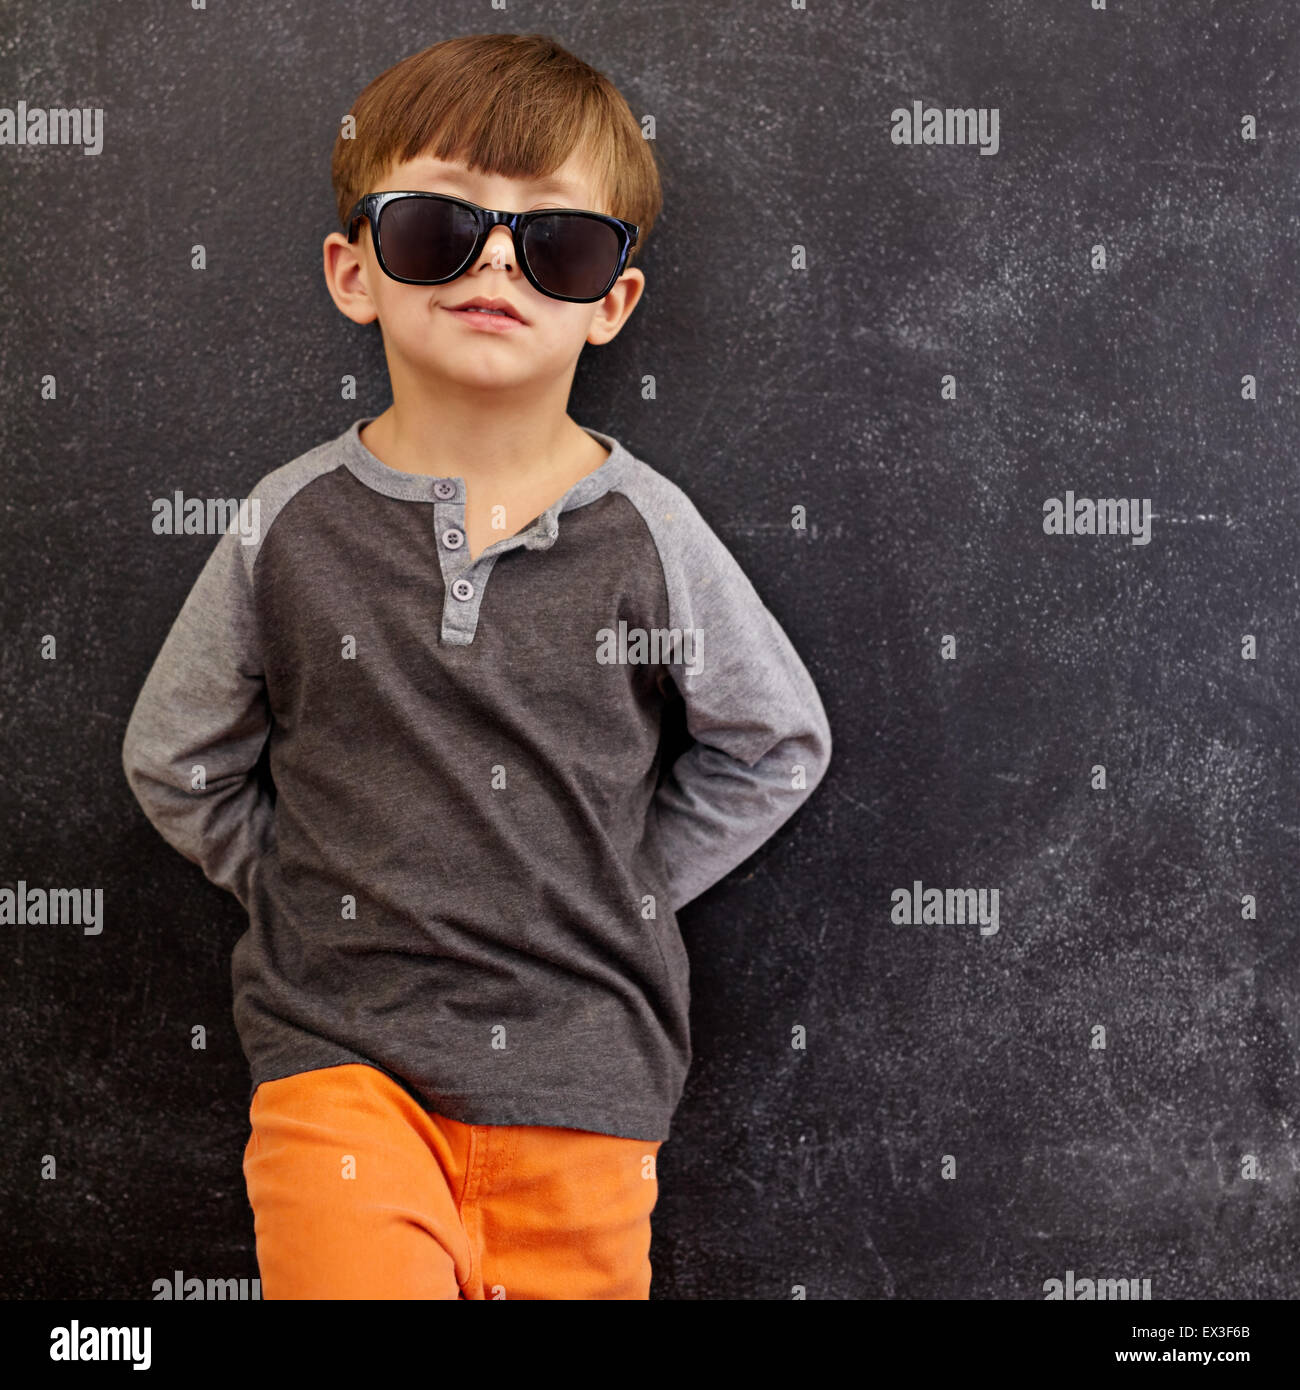 cool kid stock photos